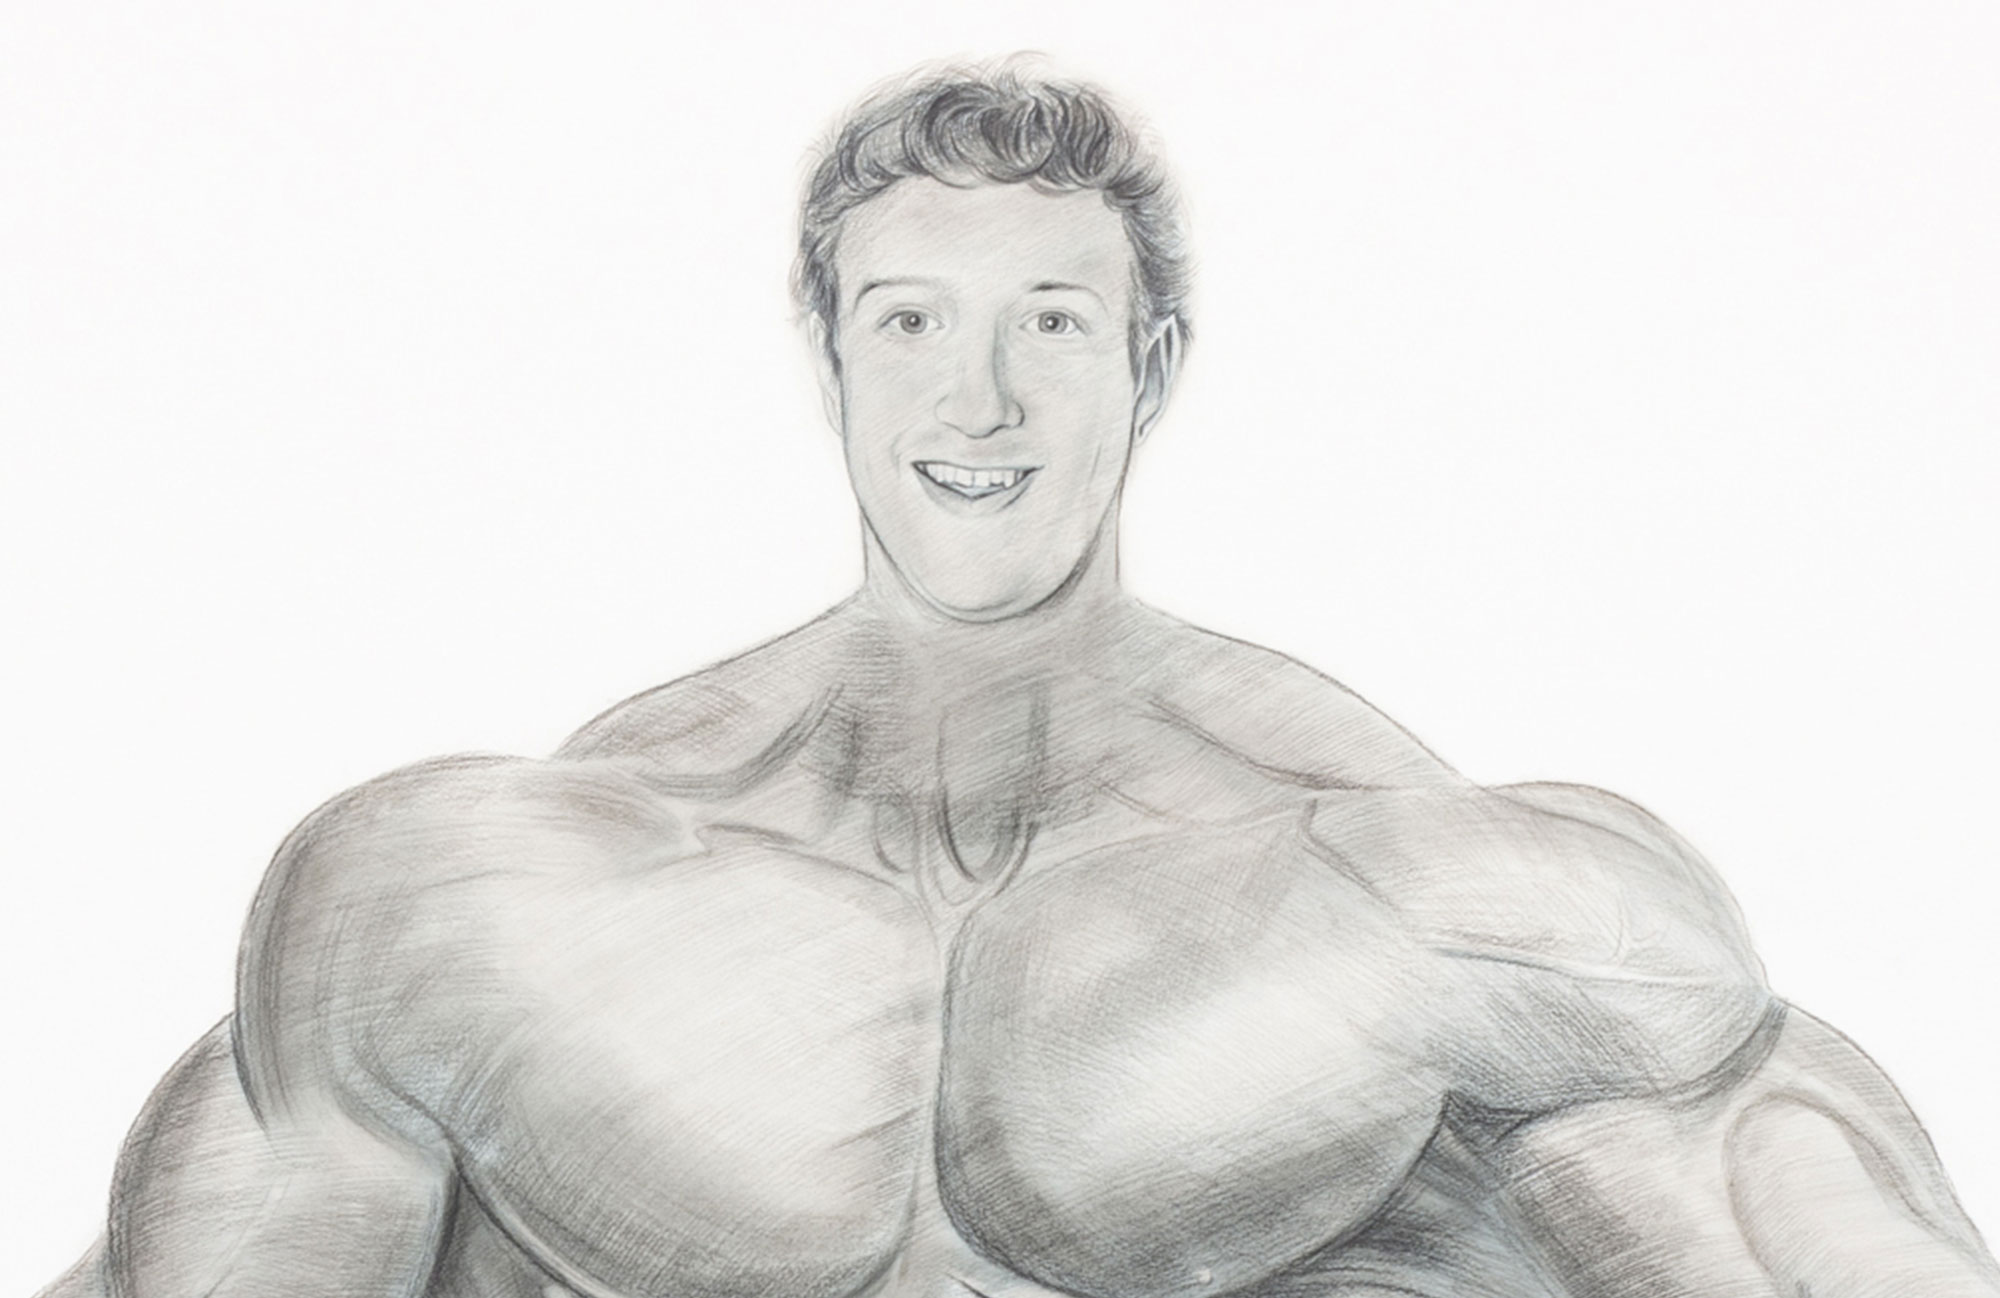 A pencil sketch of Mark Zuckerberg's face superimposed on an uber-muscular body.